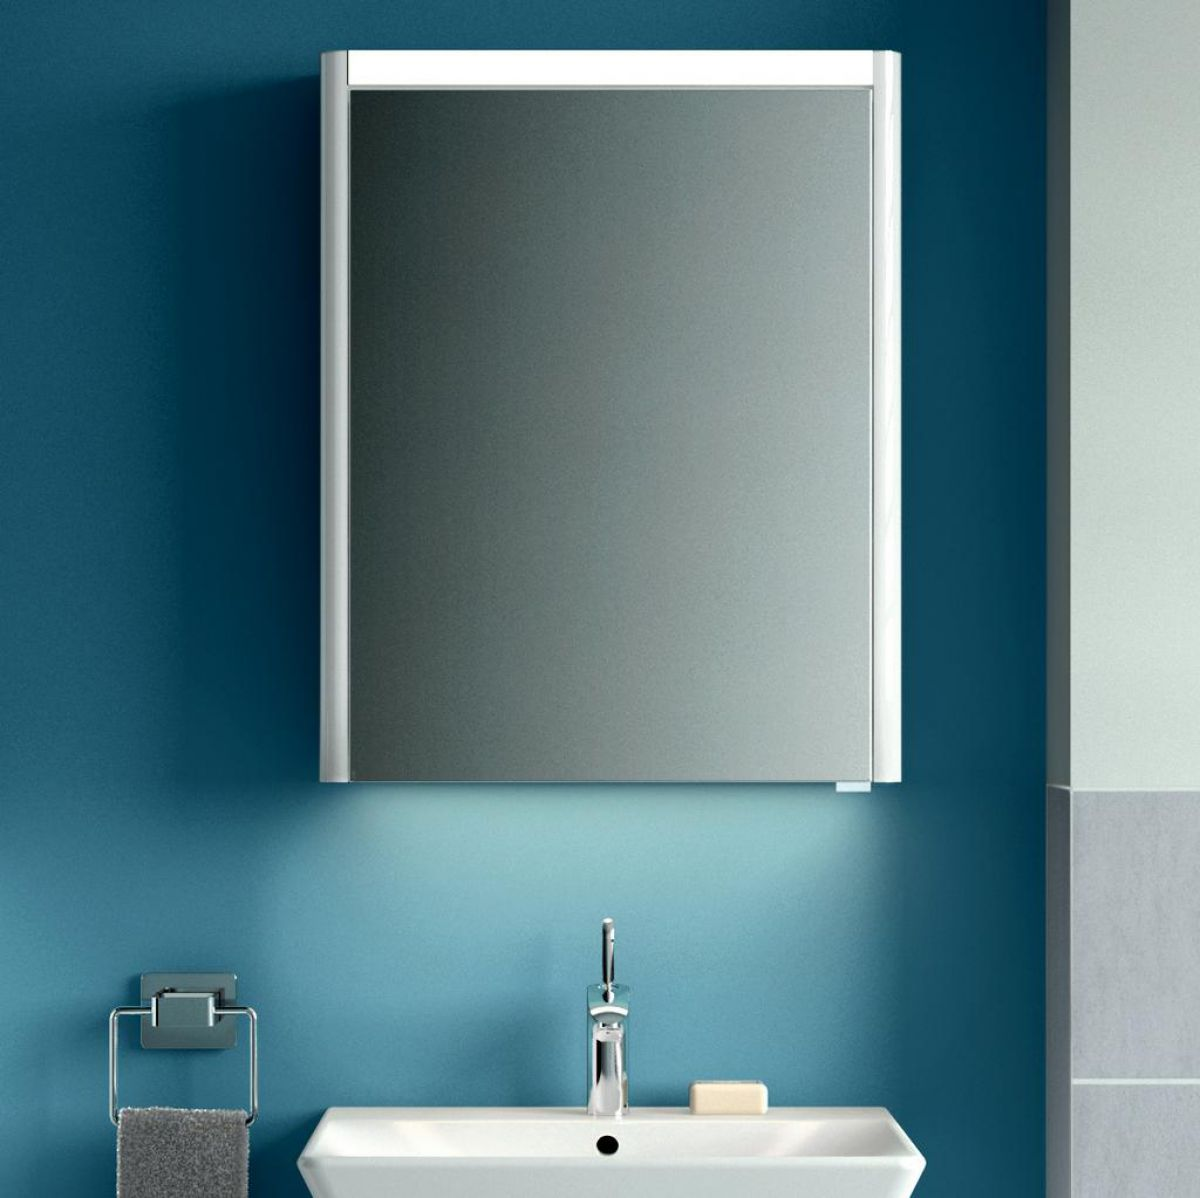 Vitra T4 Single Door Illuminated Mirror Cabinet & Vitra T4 Single Door Illuminated Mirror Cabinet : UK Bathrooms